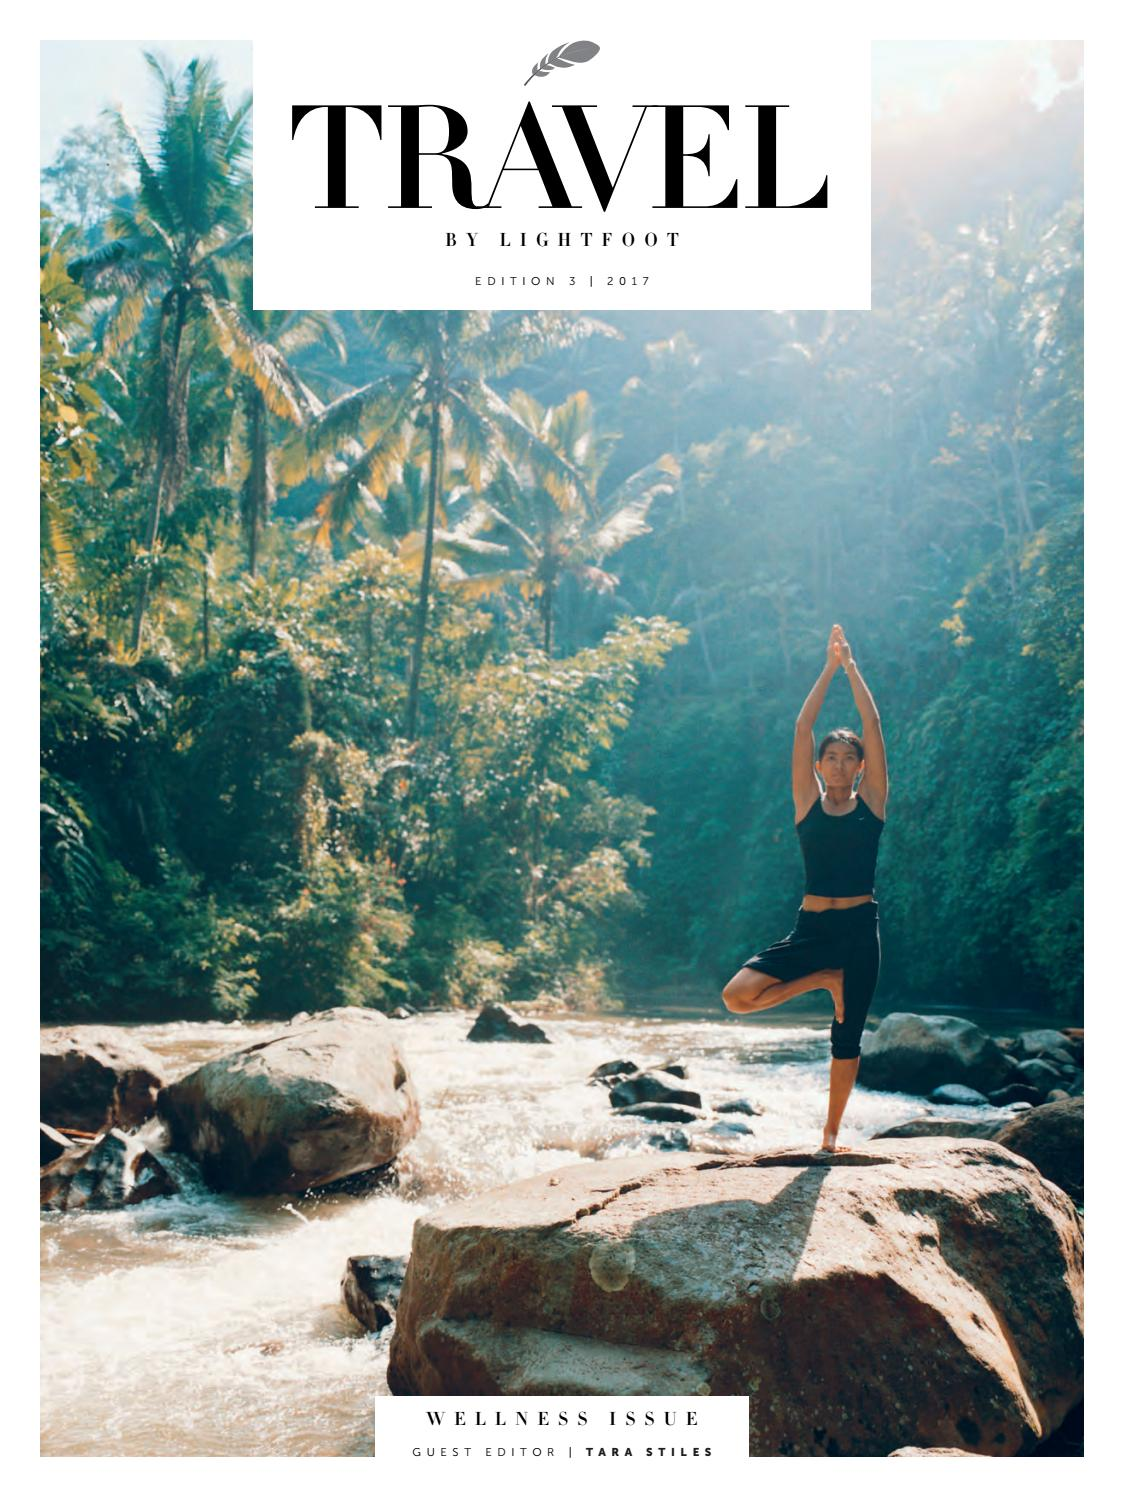 Travel By Lightfoot: Edition 3 - The Wellness Issue by